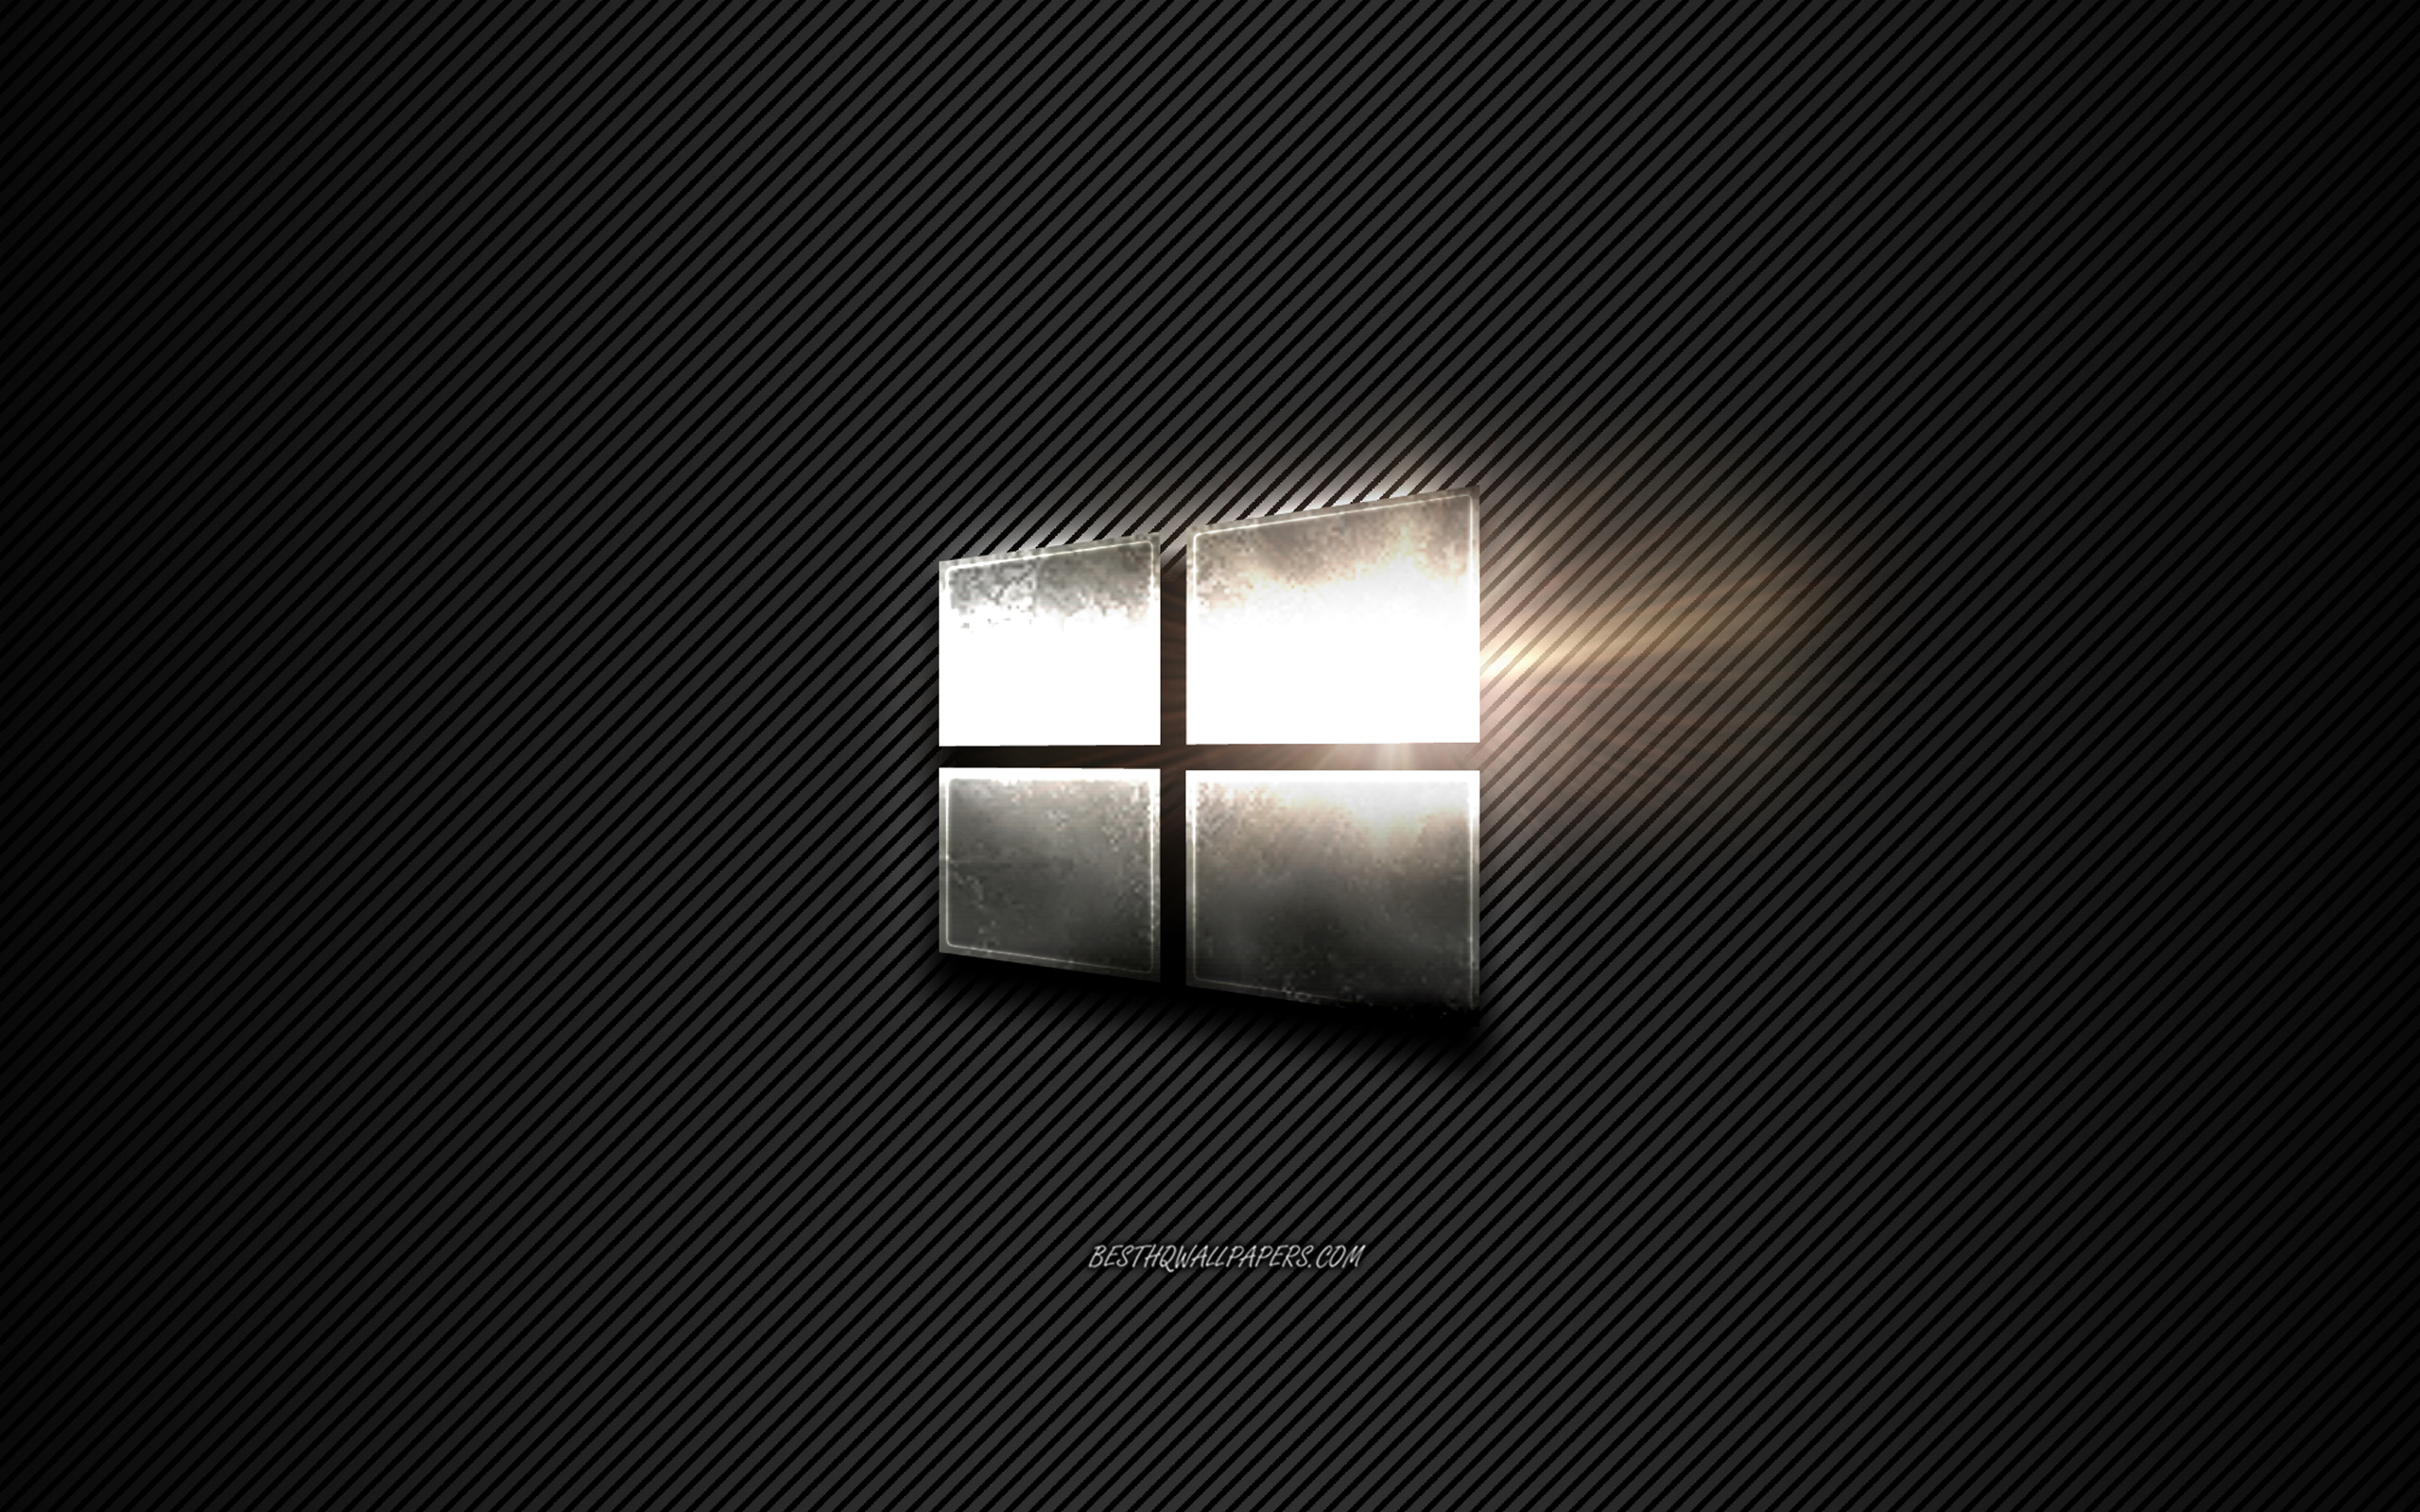 Windows 10 el logo de Metal, líneas de color negro de fondo, el carbono negro de fondo, Windows 10 logotipo, emblema, el arte del metal, Windows